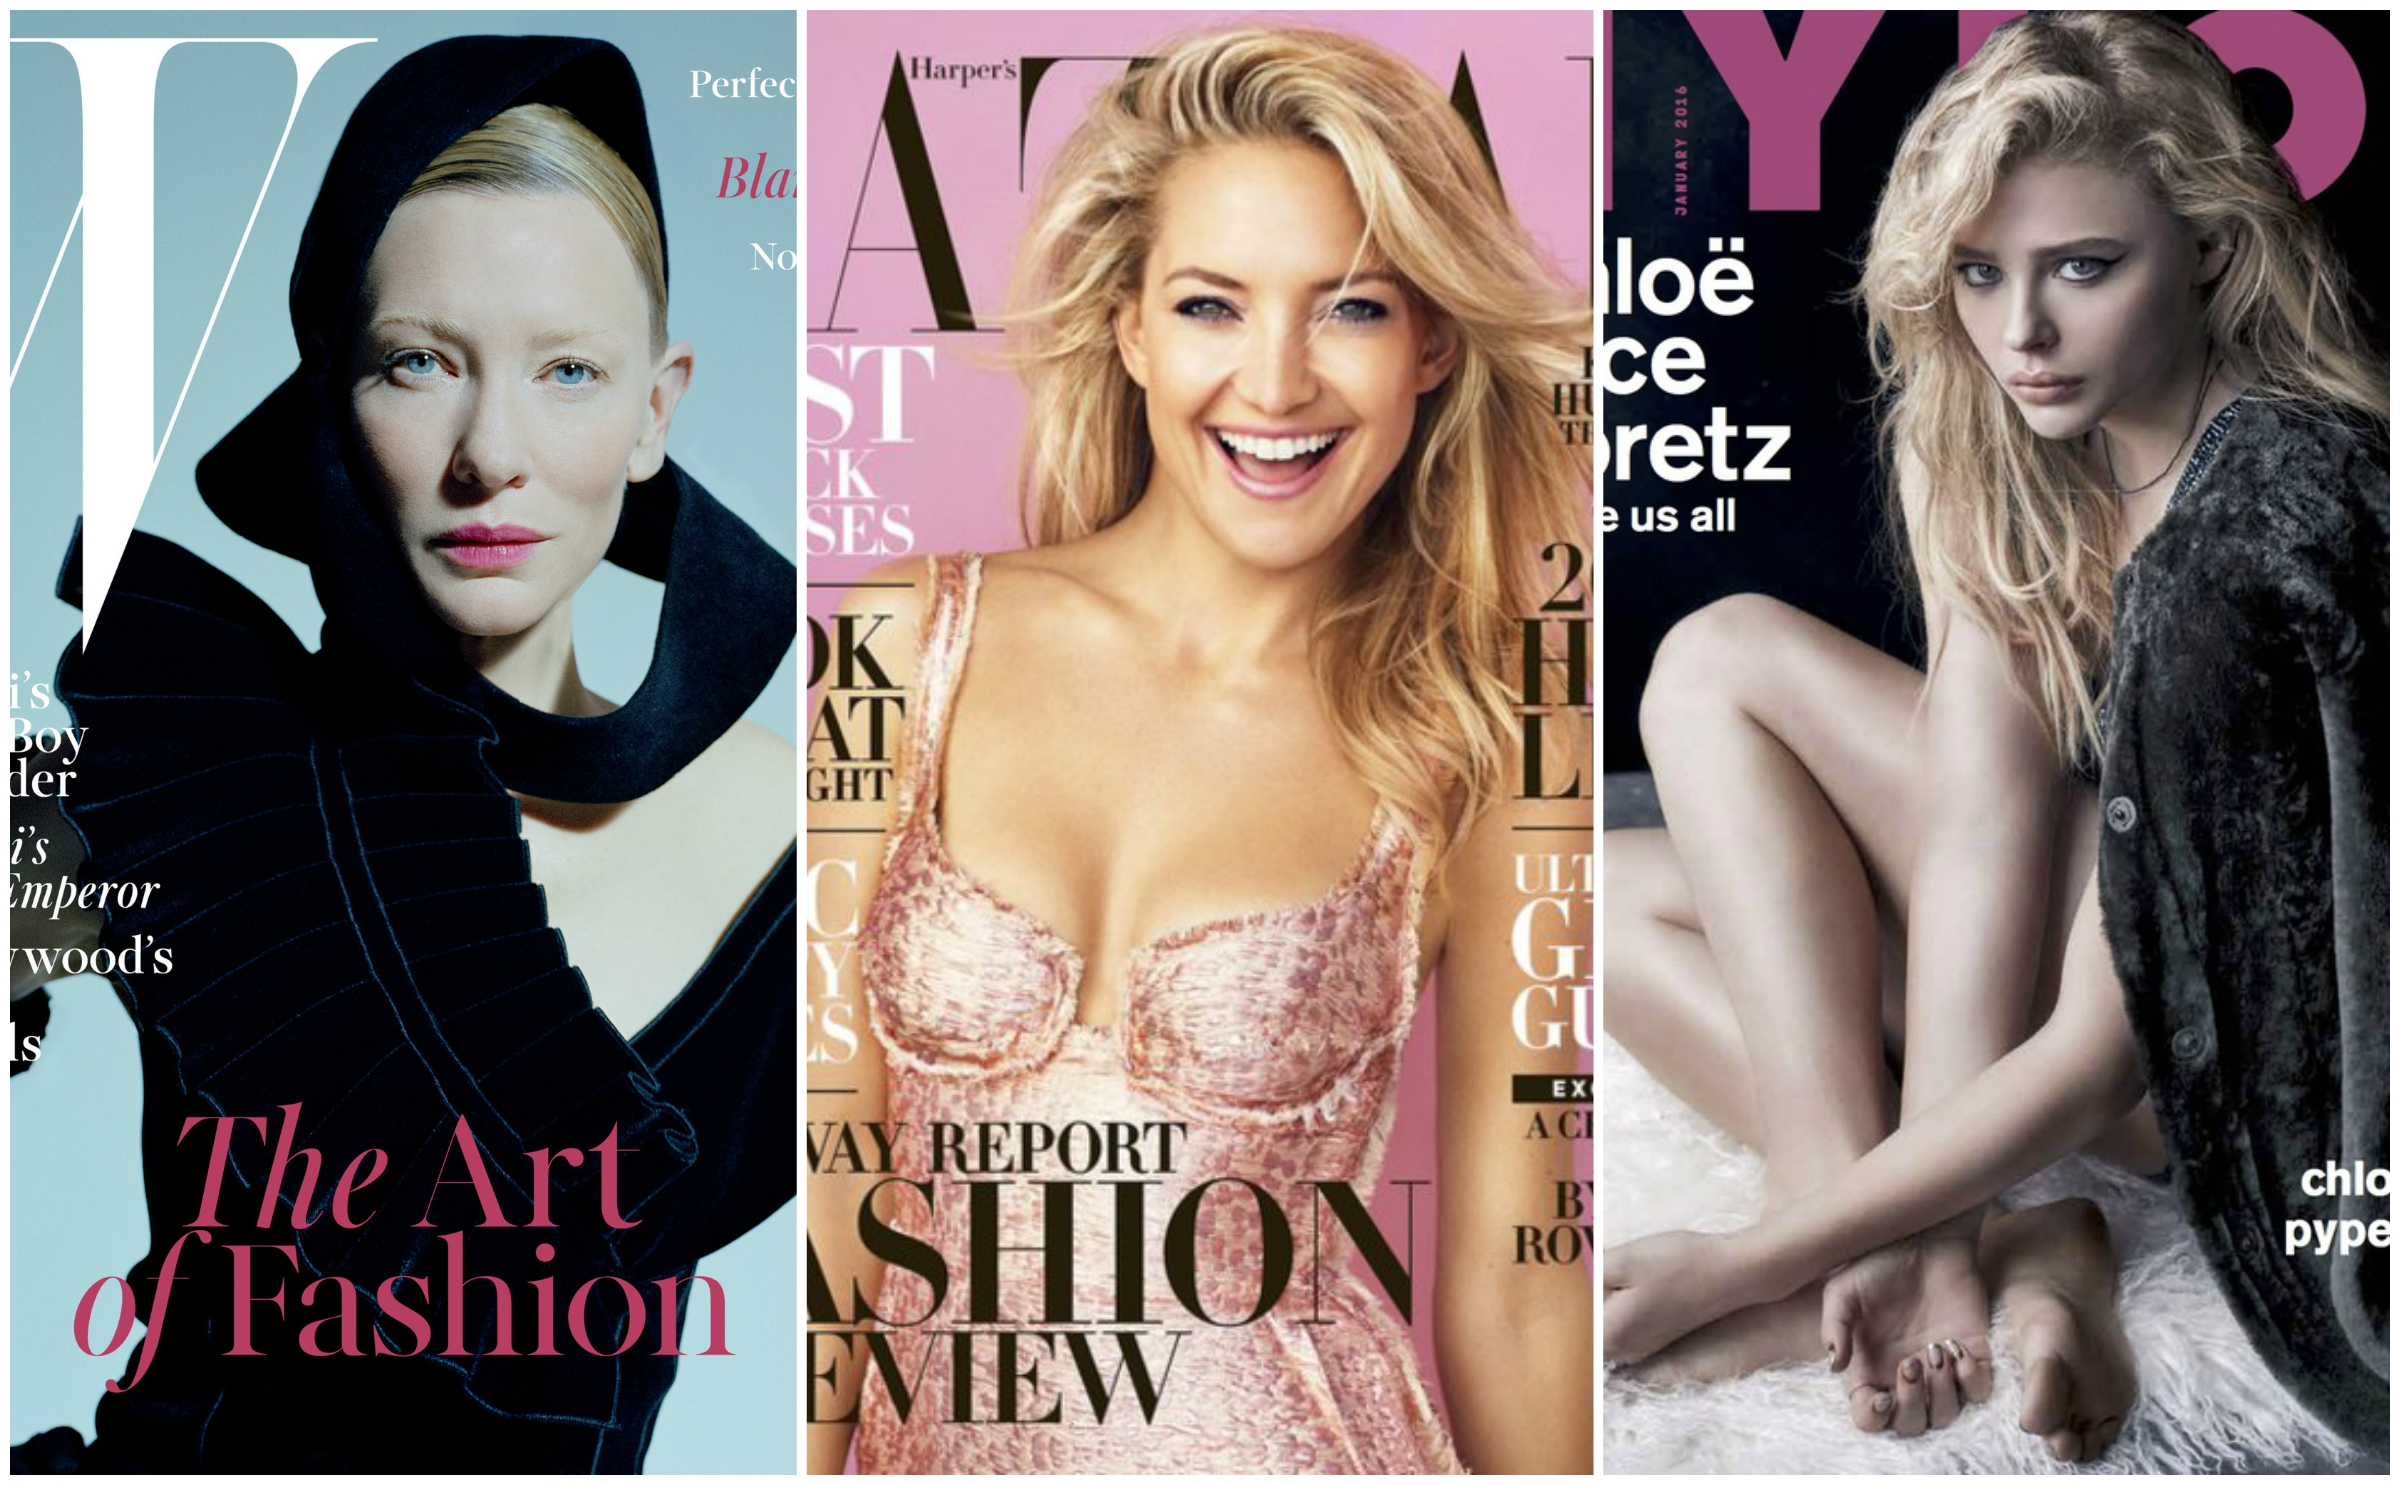 The December covers of W magazine, Harper's Bazaar, and Nylon